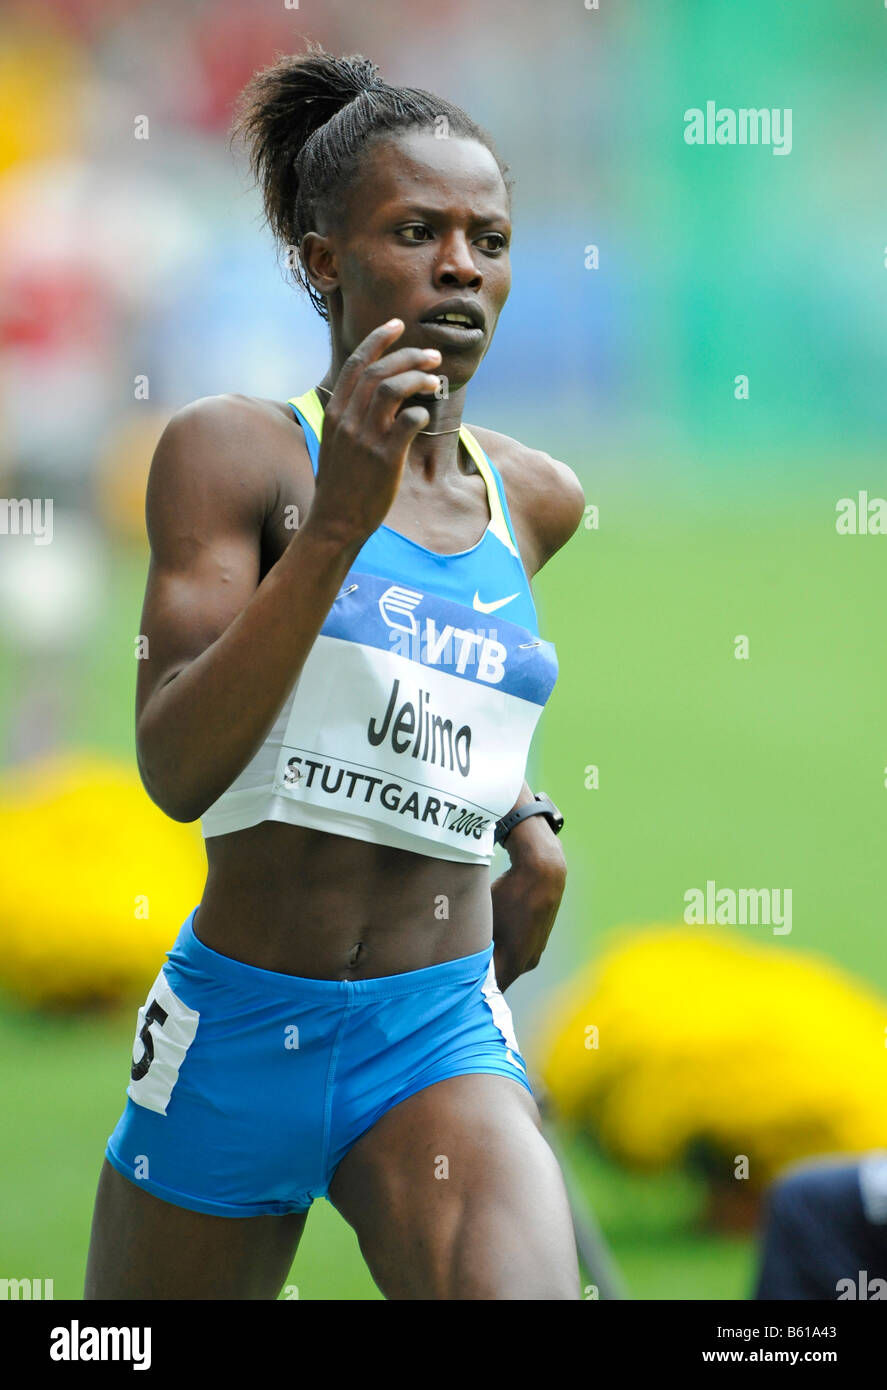 Pamela JELIMO, KEN, 800m, first place, at the IAAF 2008 World Athletics Final for track and field in the Mercedes - Stock Image